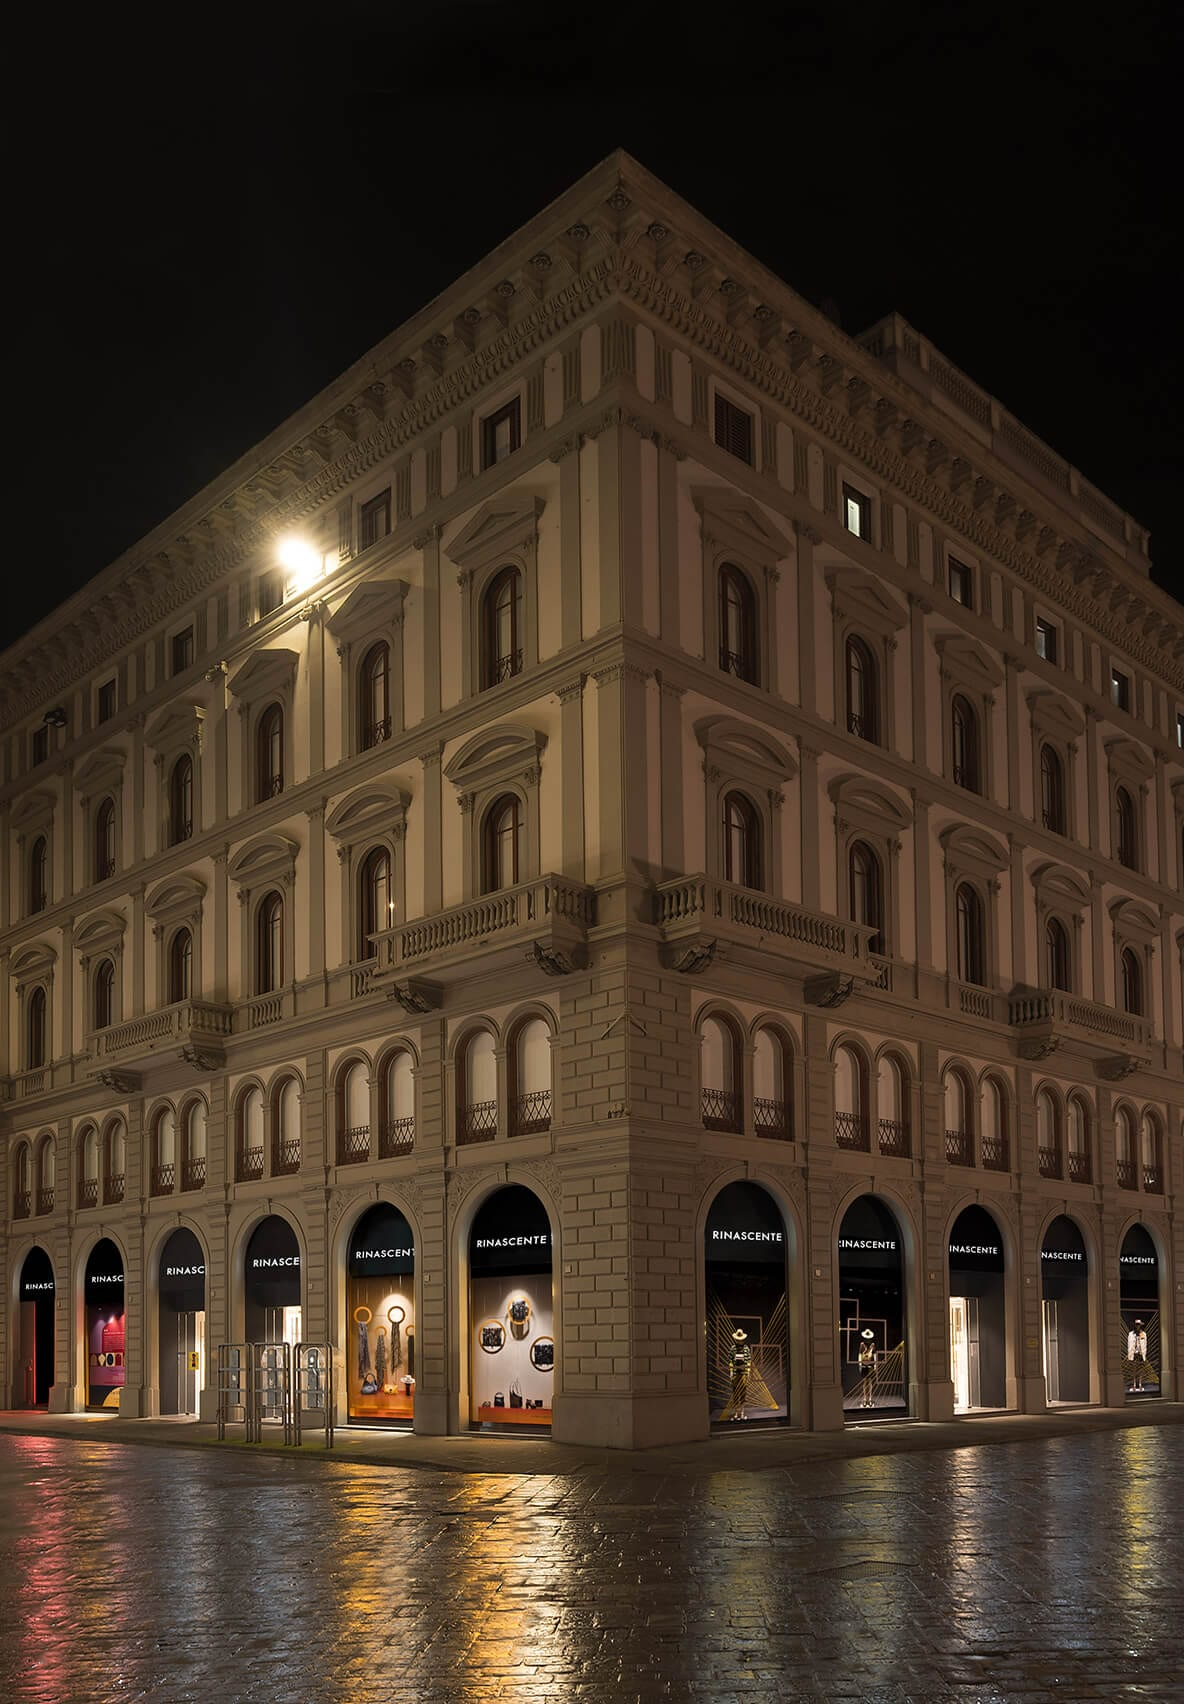 The Store of Craft in Florence is completed